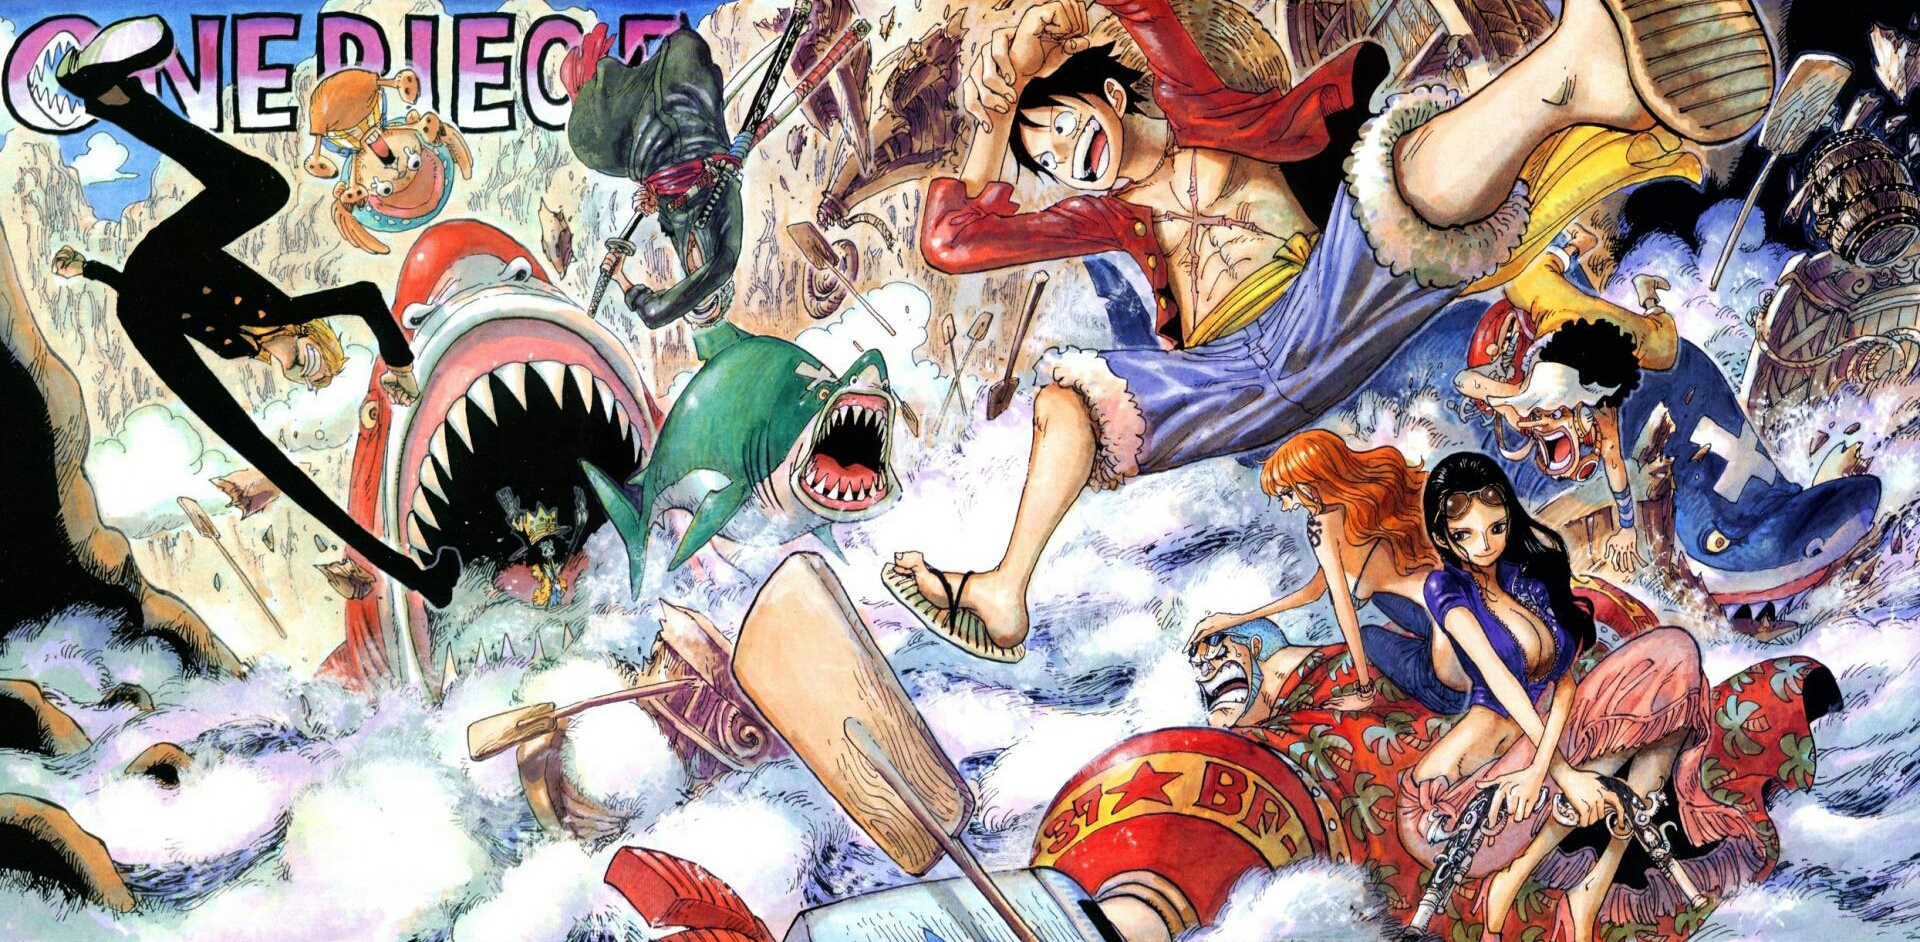 One Piece Images One Piece Hd Wallpaper And Background Photos 40996449